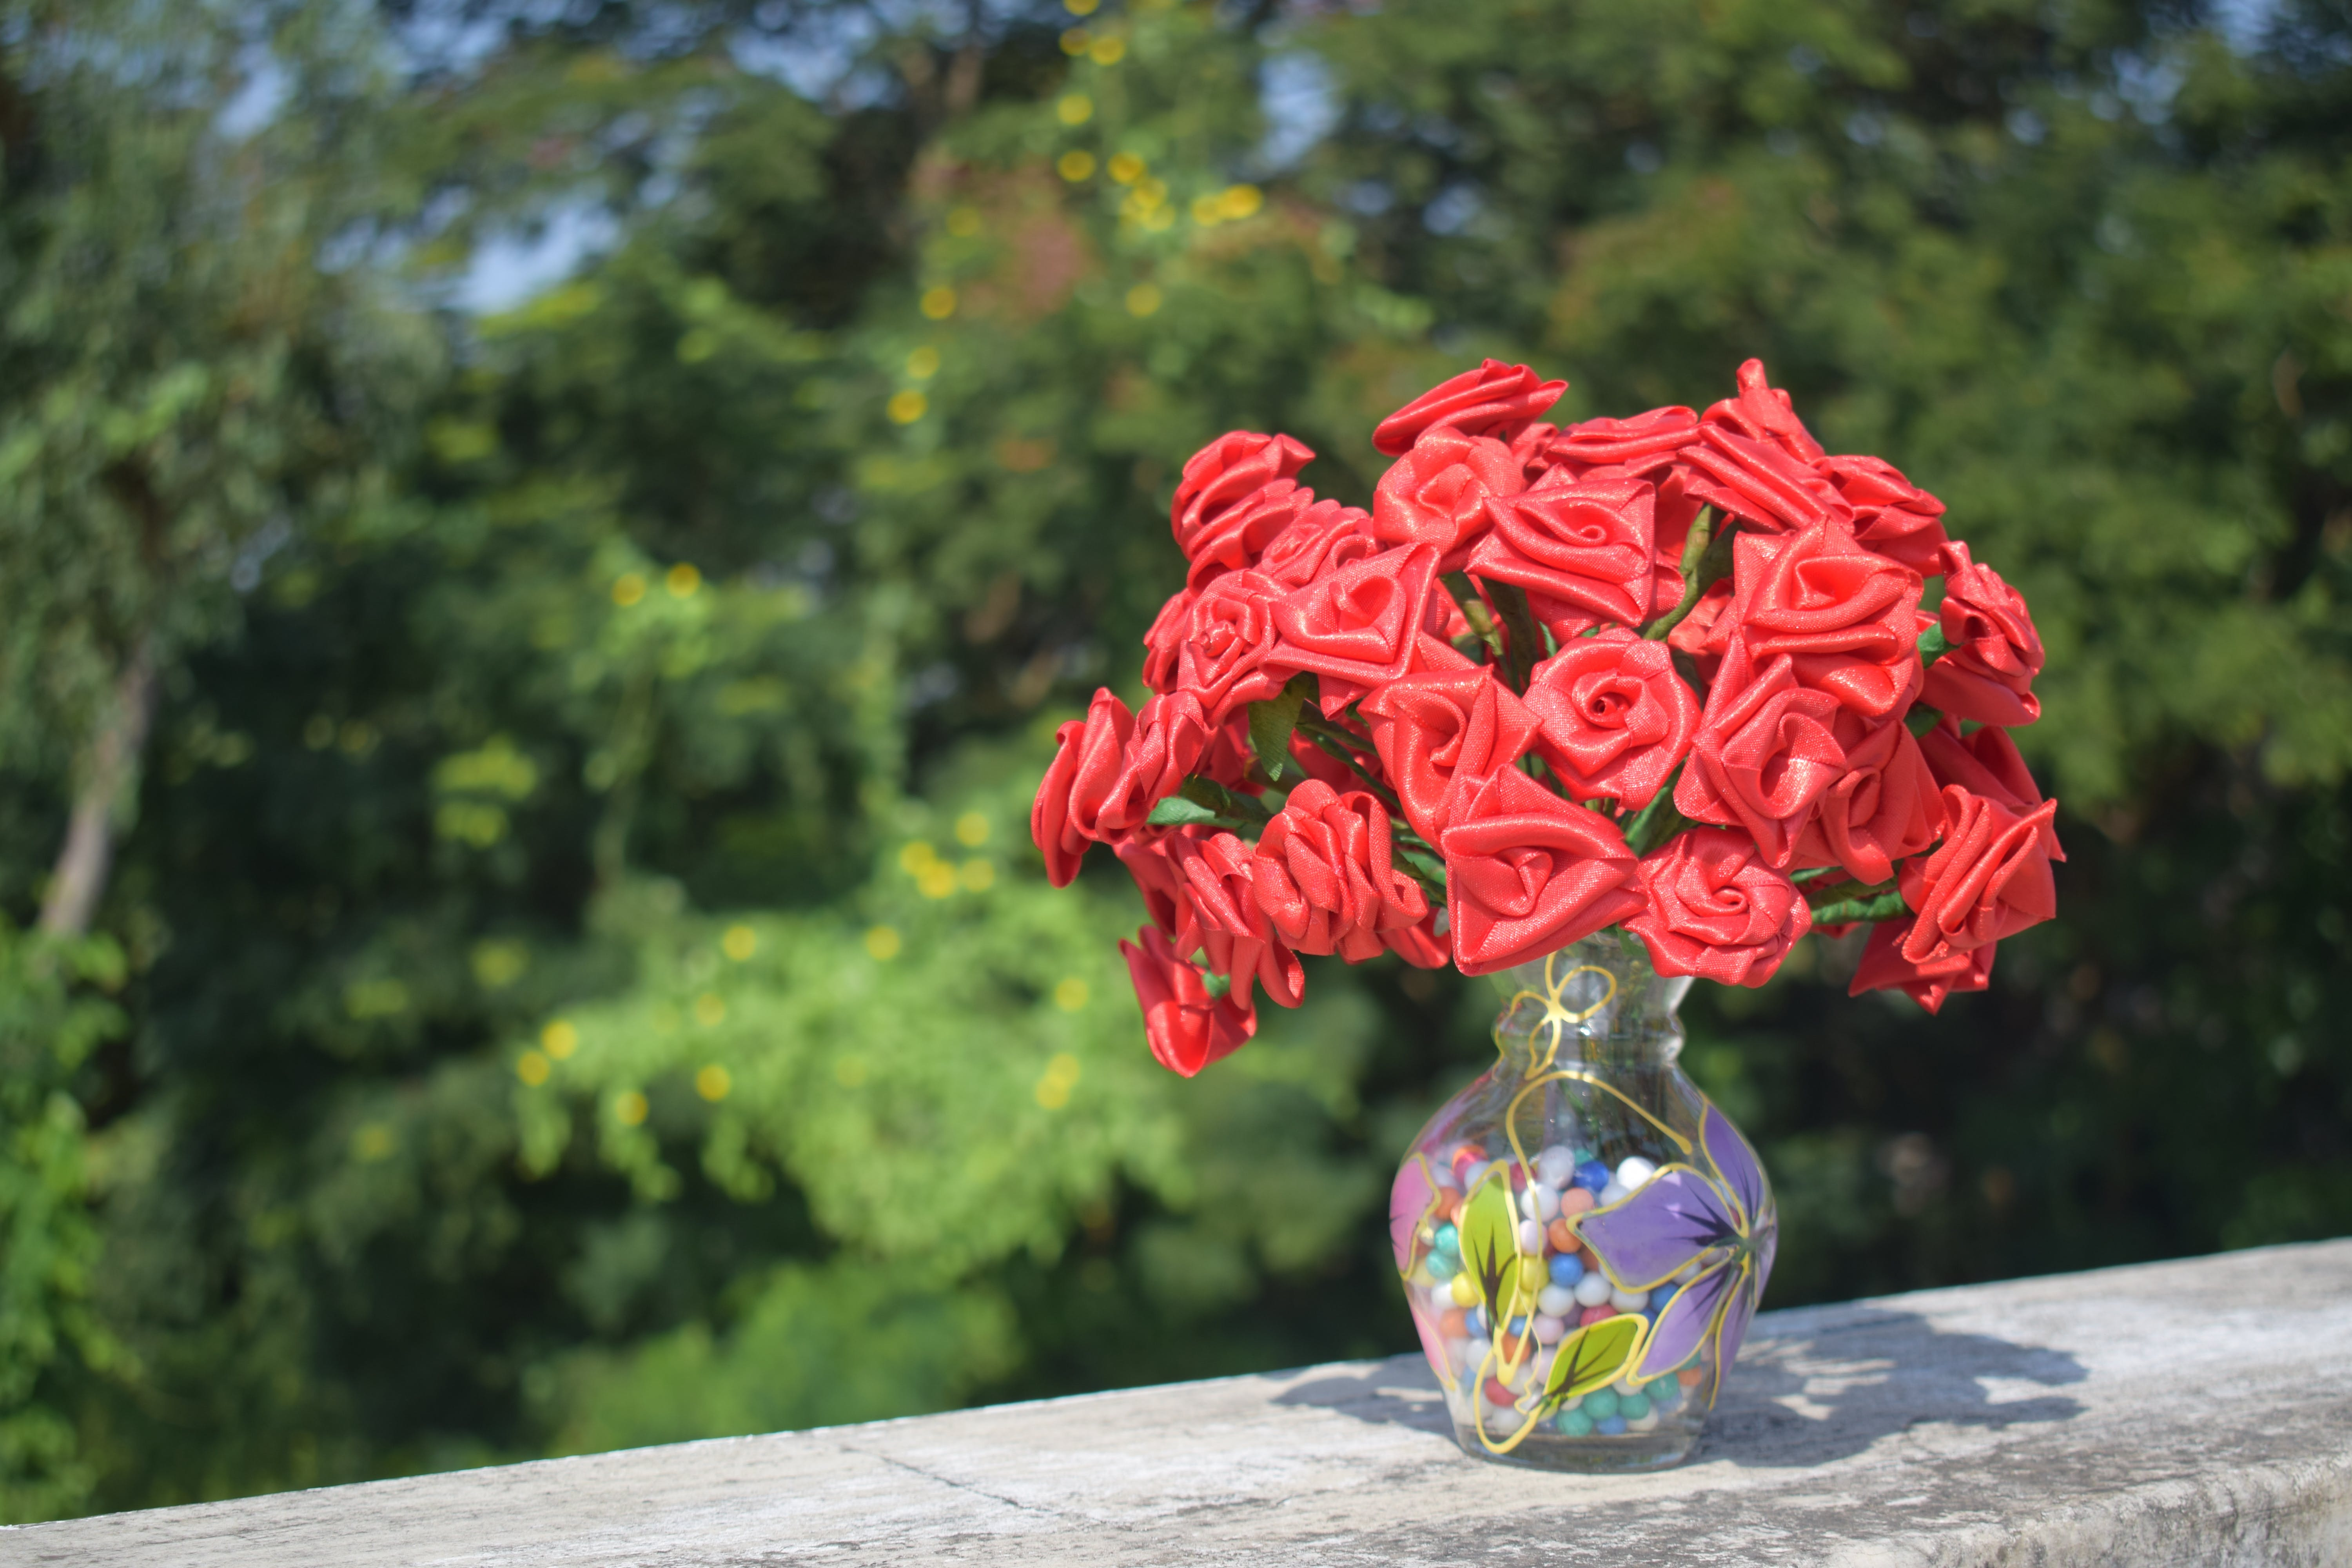 Artificial Roses in Clear Glass Vase on Concrete Surface